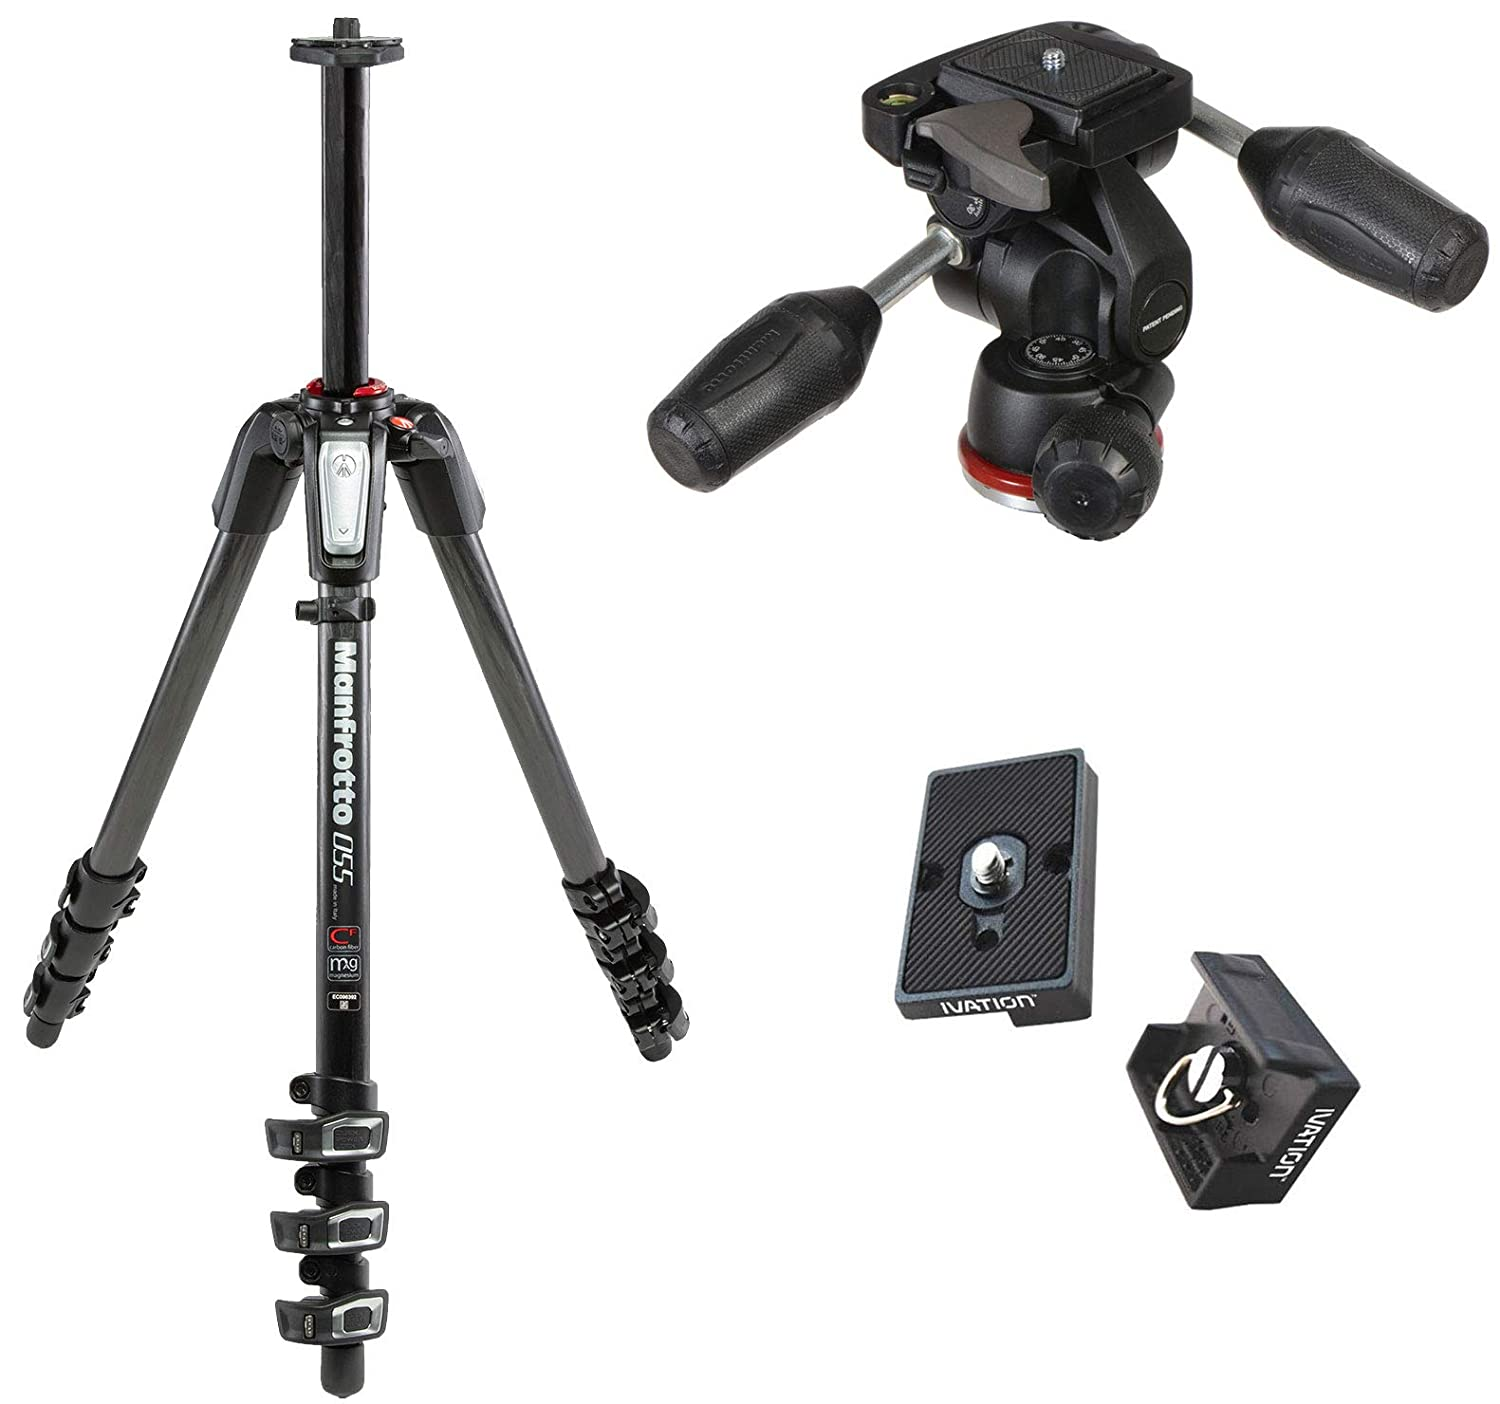 Manfrotto mt055cxpro4 055カーボンファイバー4-section三脚キットwith 804 3ウェイヘッド交換用クイックリリースプレート2つ付きThe rc2 Rapid Connectアダプタ   B014Q8CPYA